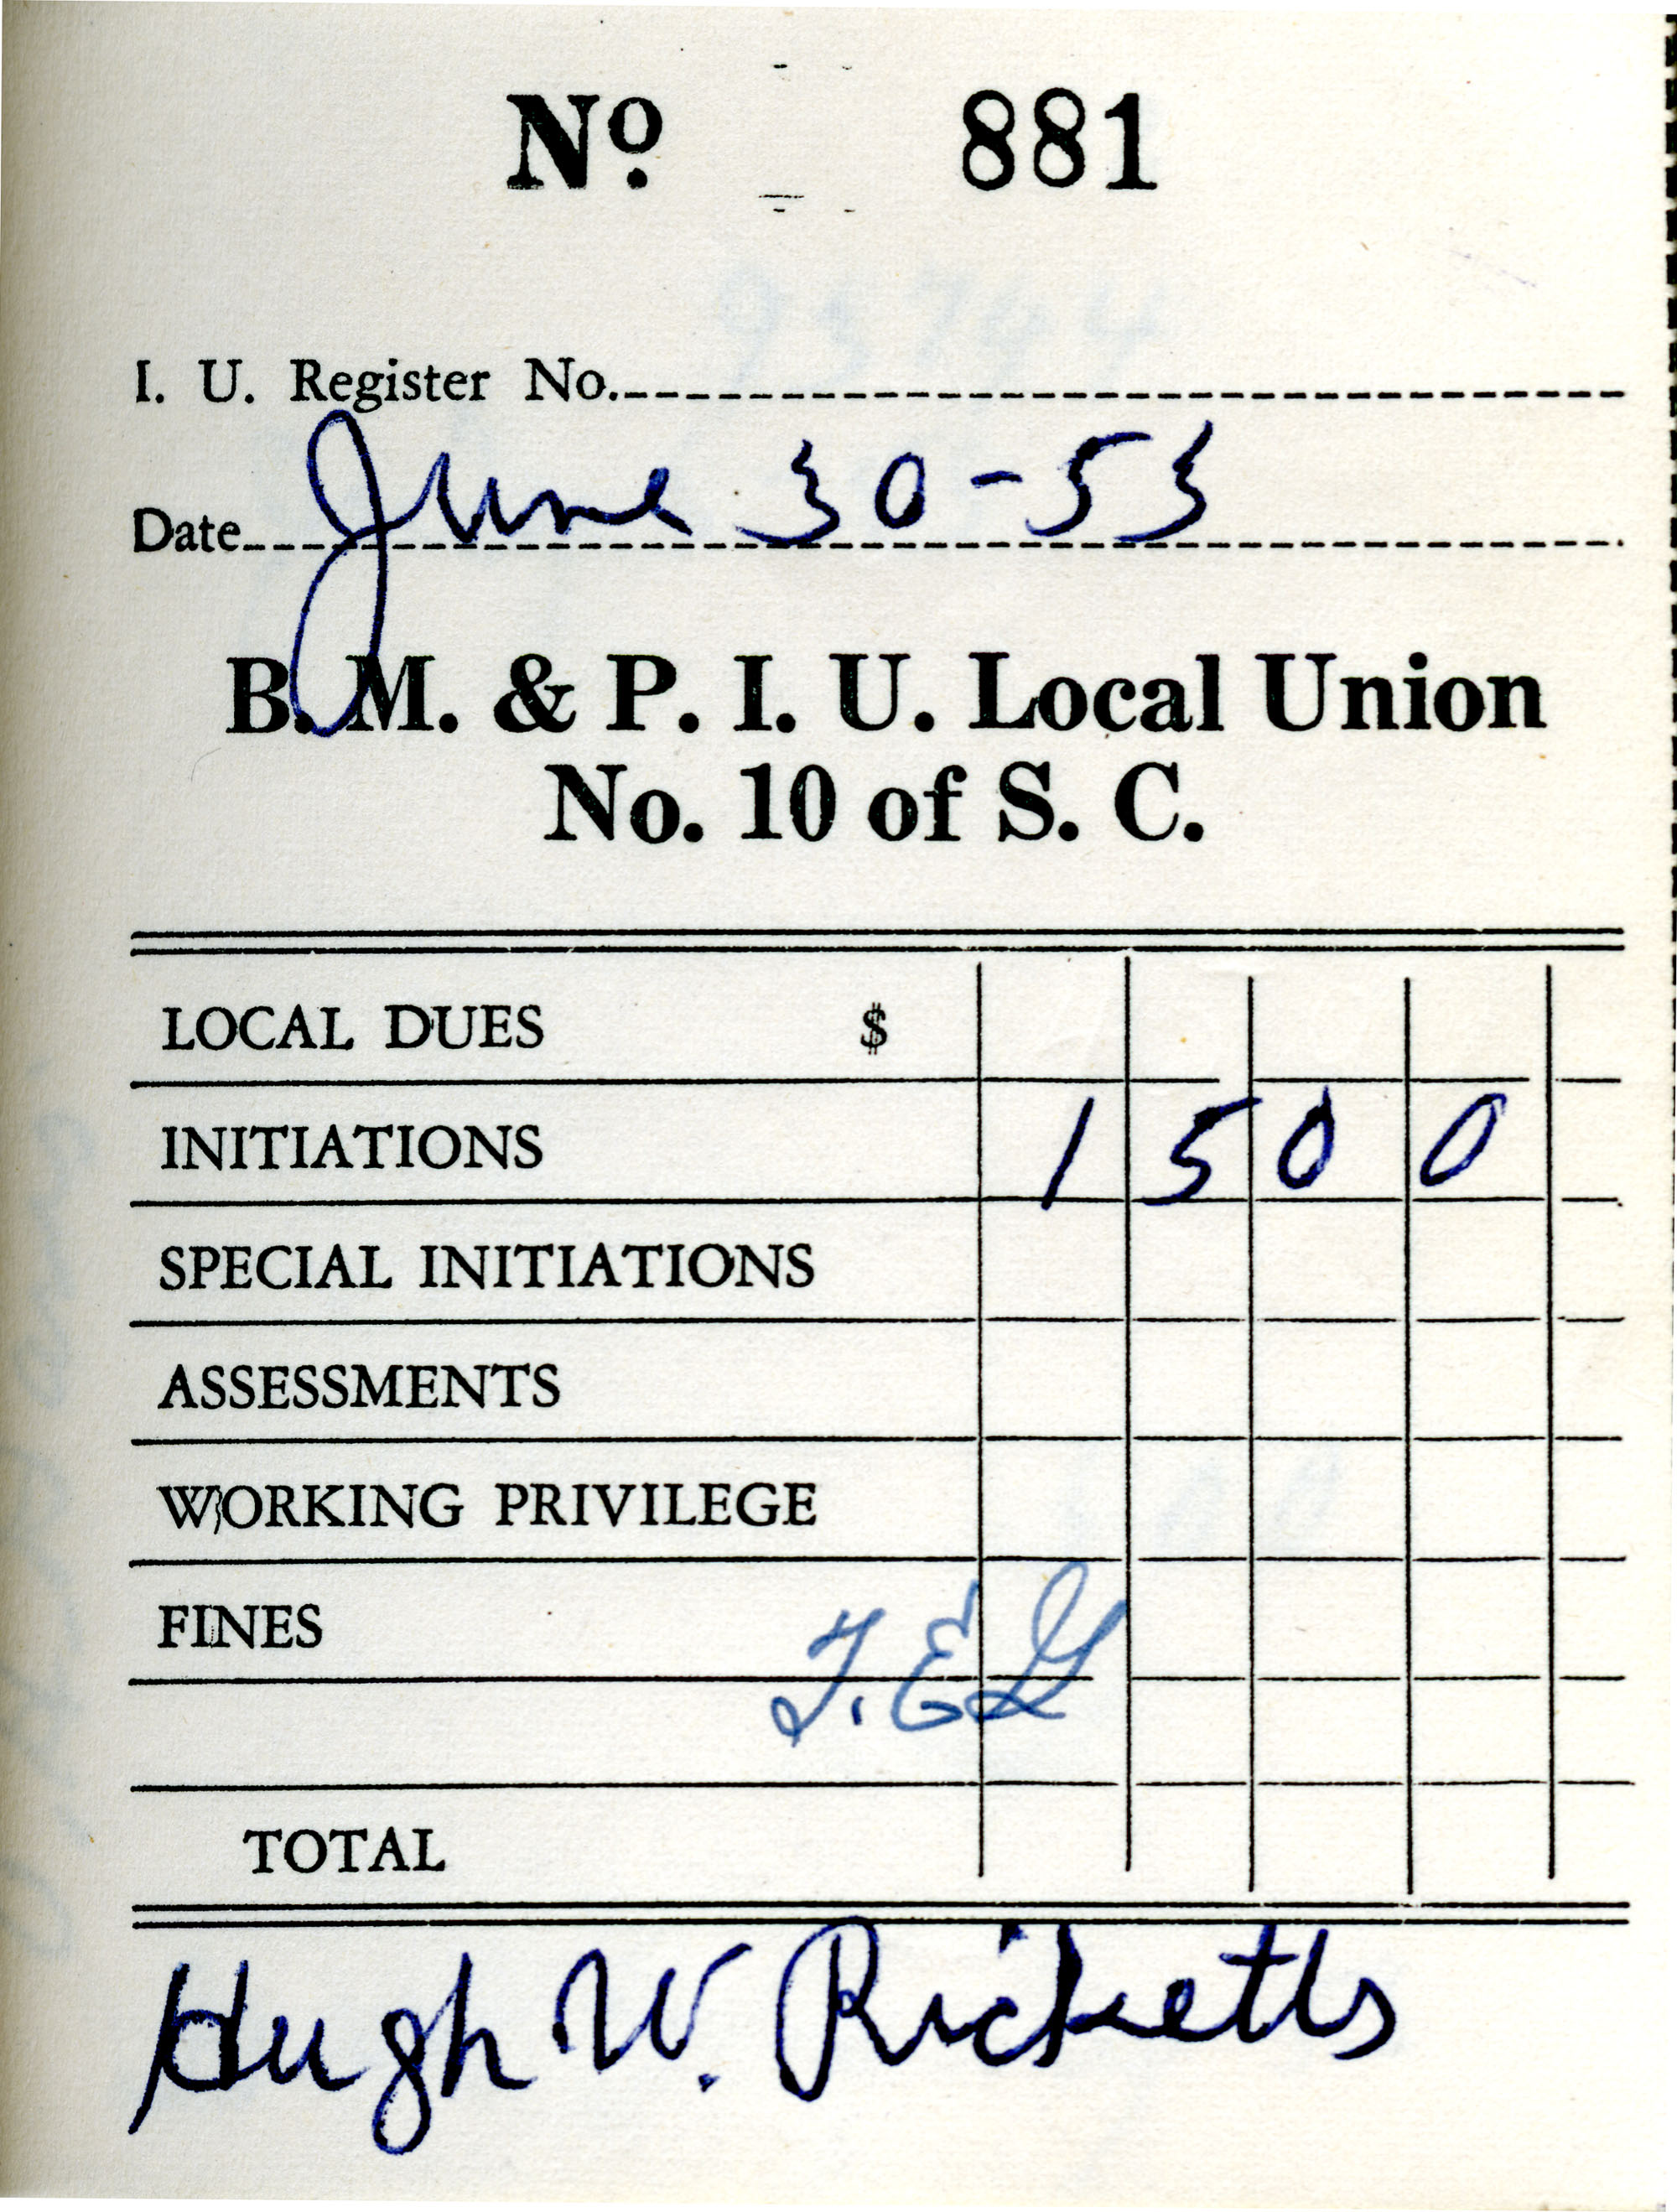 Receipt Book 3, Page 26